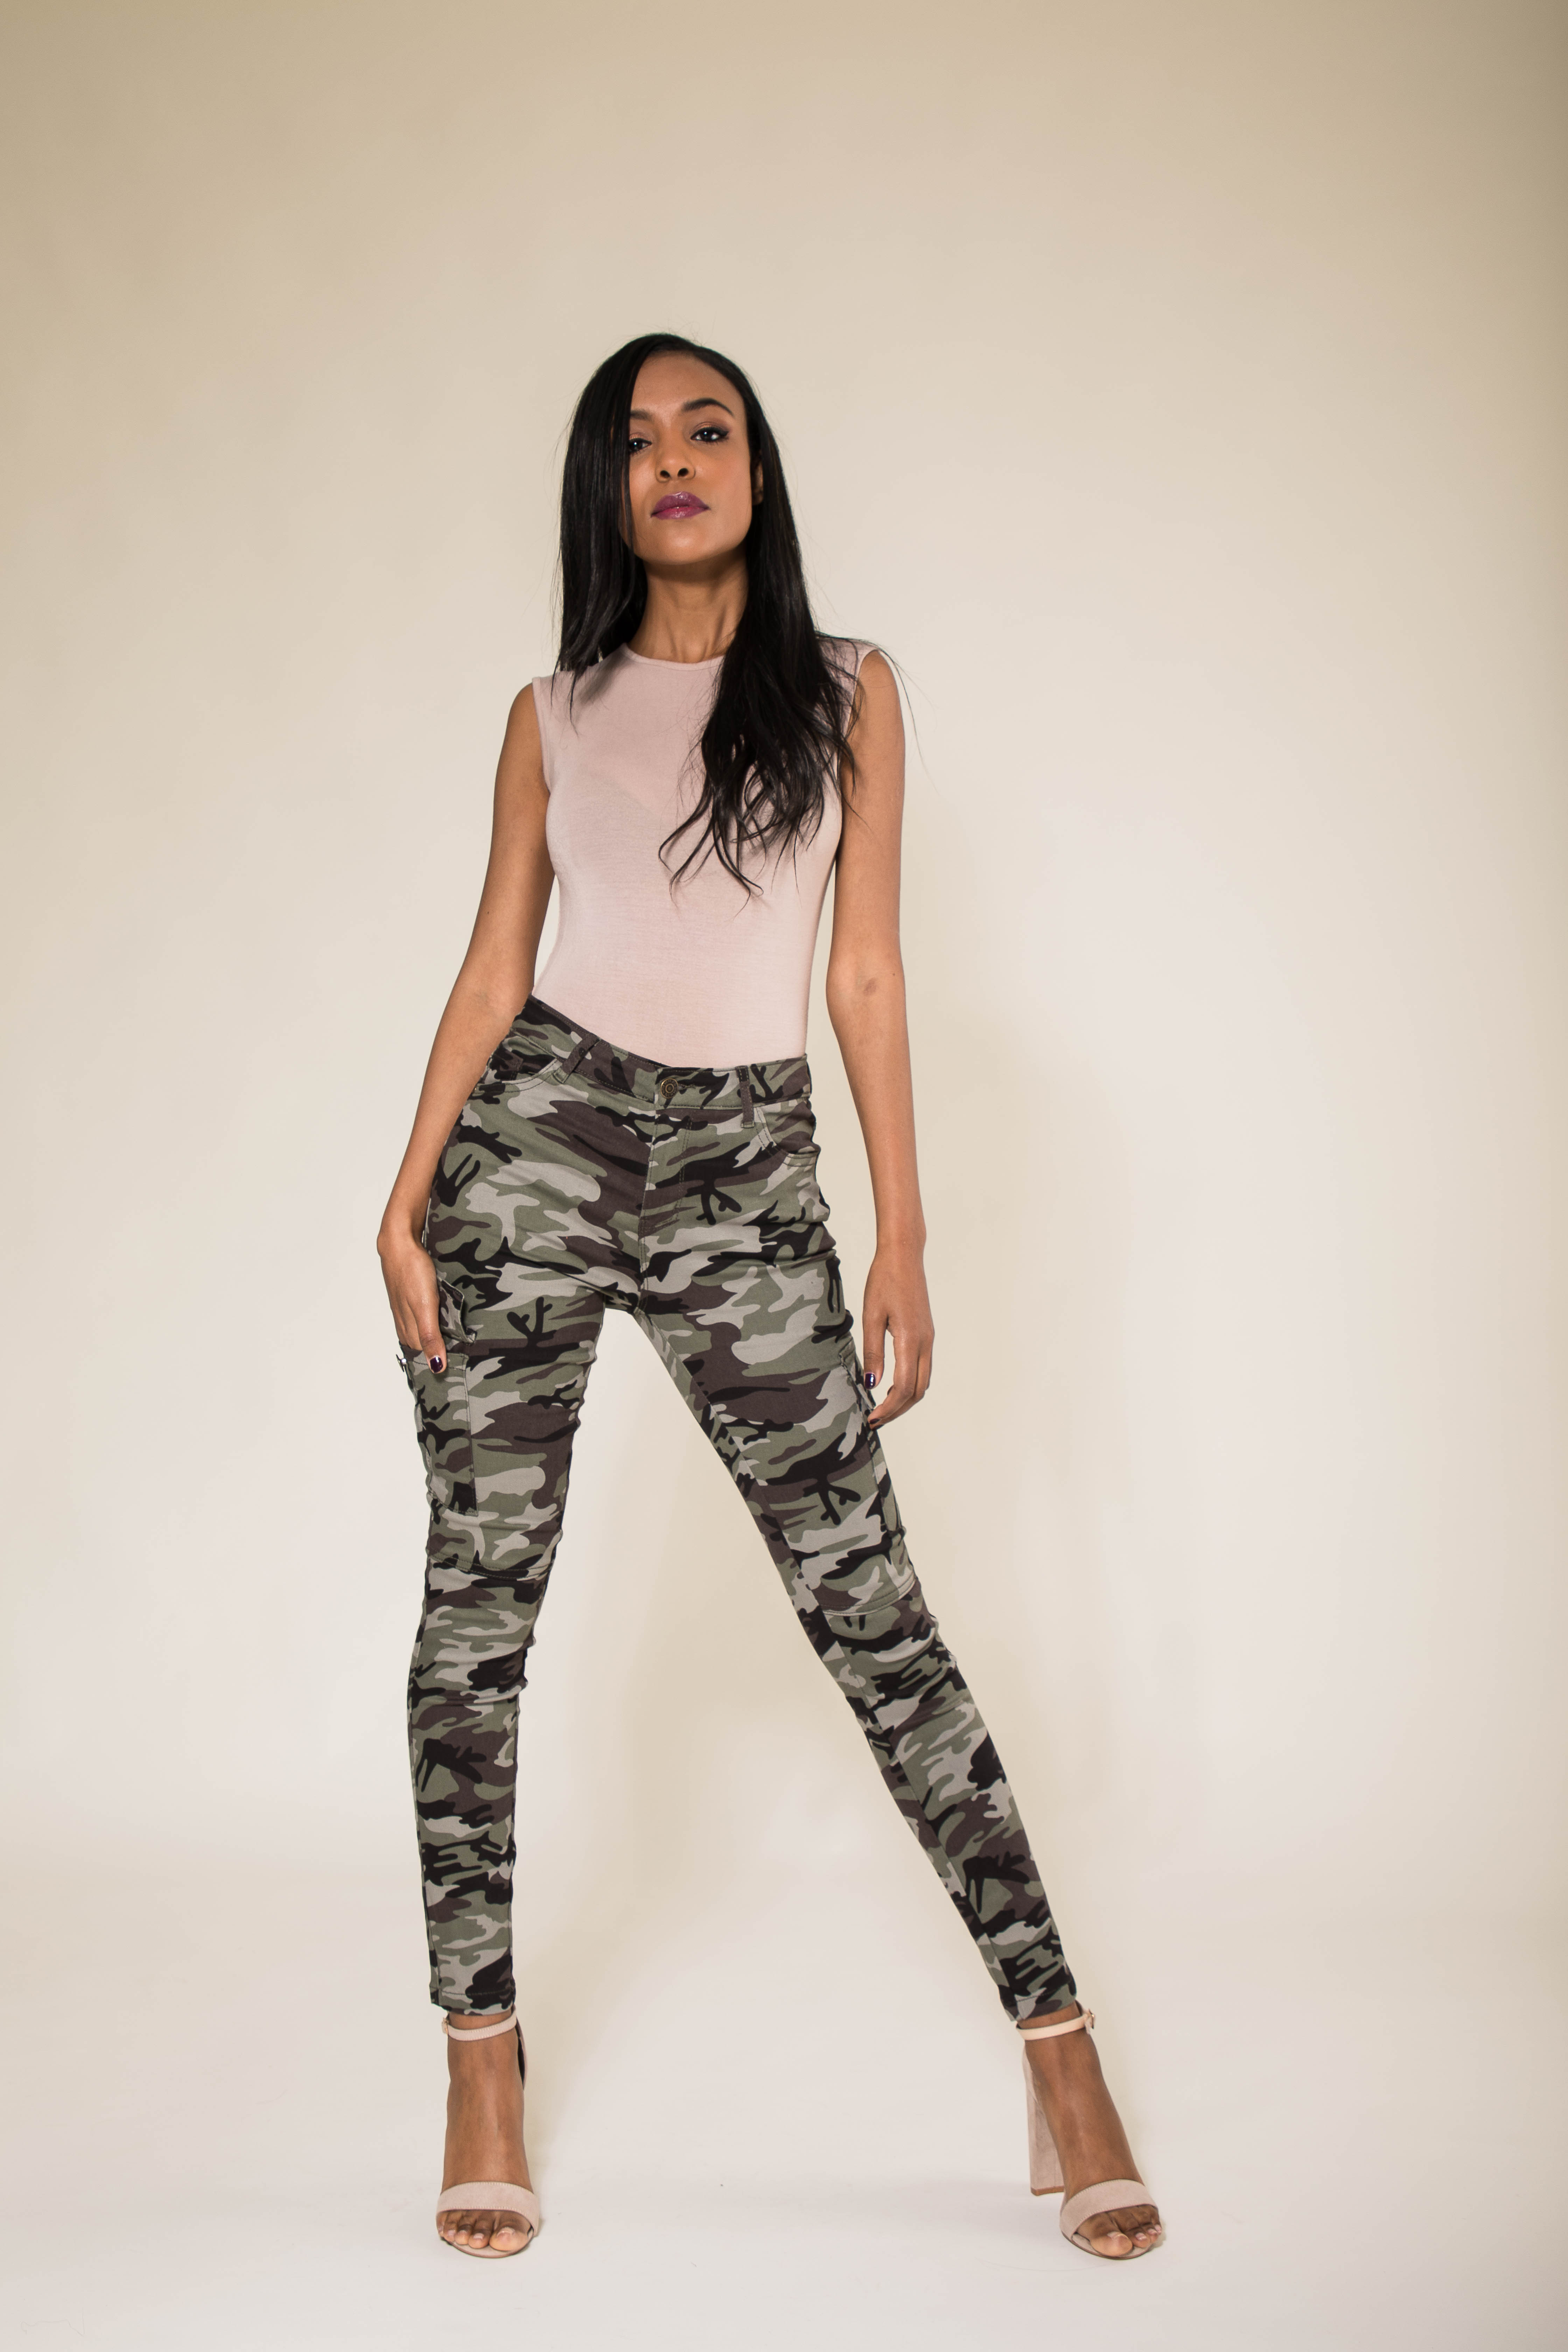 f8804a3729498 Womens Army Camo Pants Ladies Camouflage Stretch Casual Skinny Jeans Size 6- 14